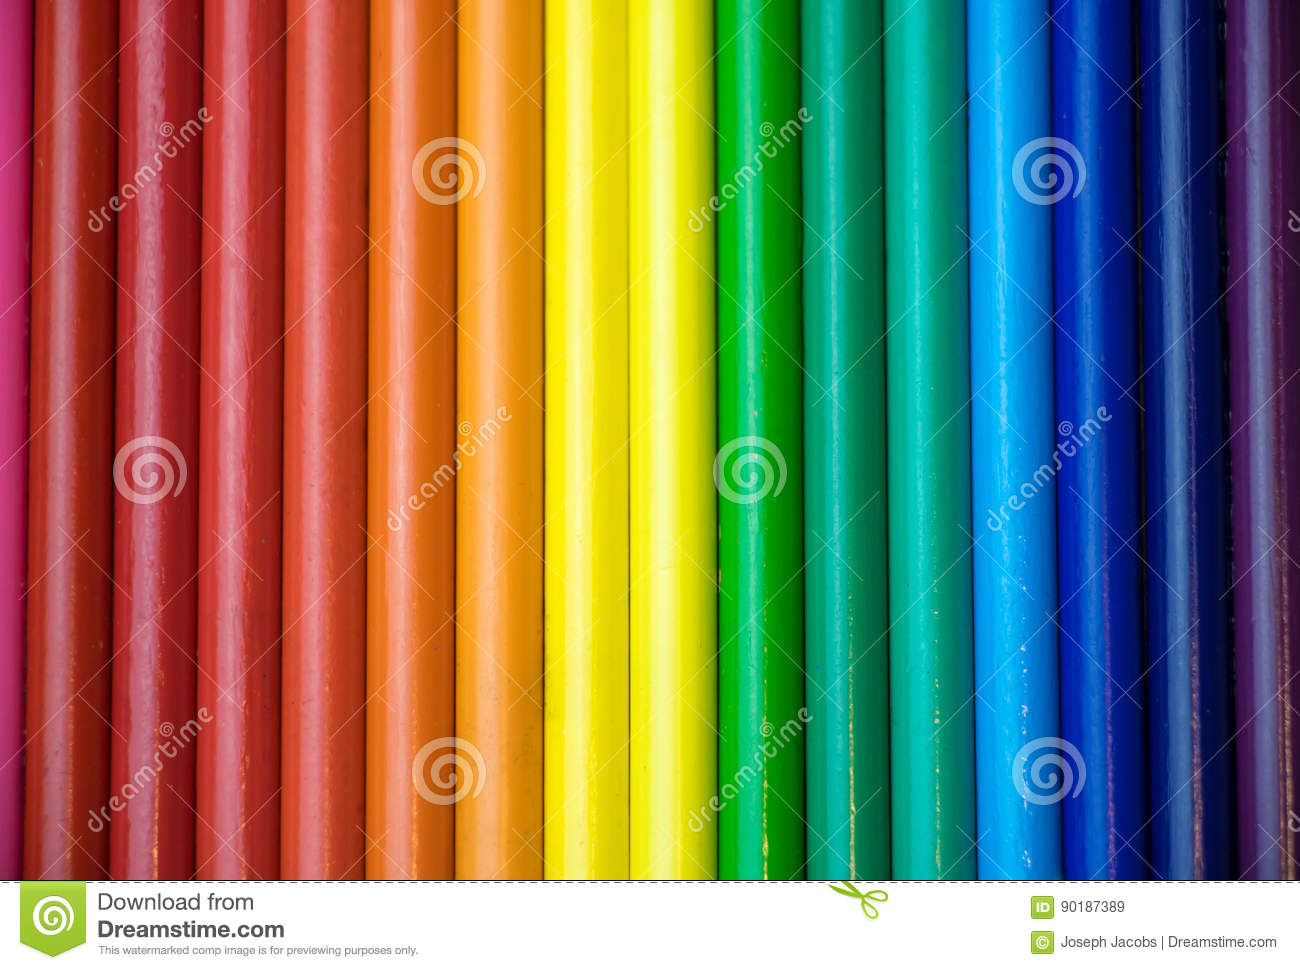 Rainbow colors in order pictures - Colored Order Pencils Rainbow